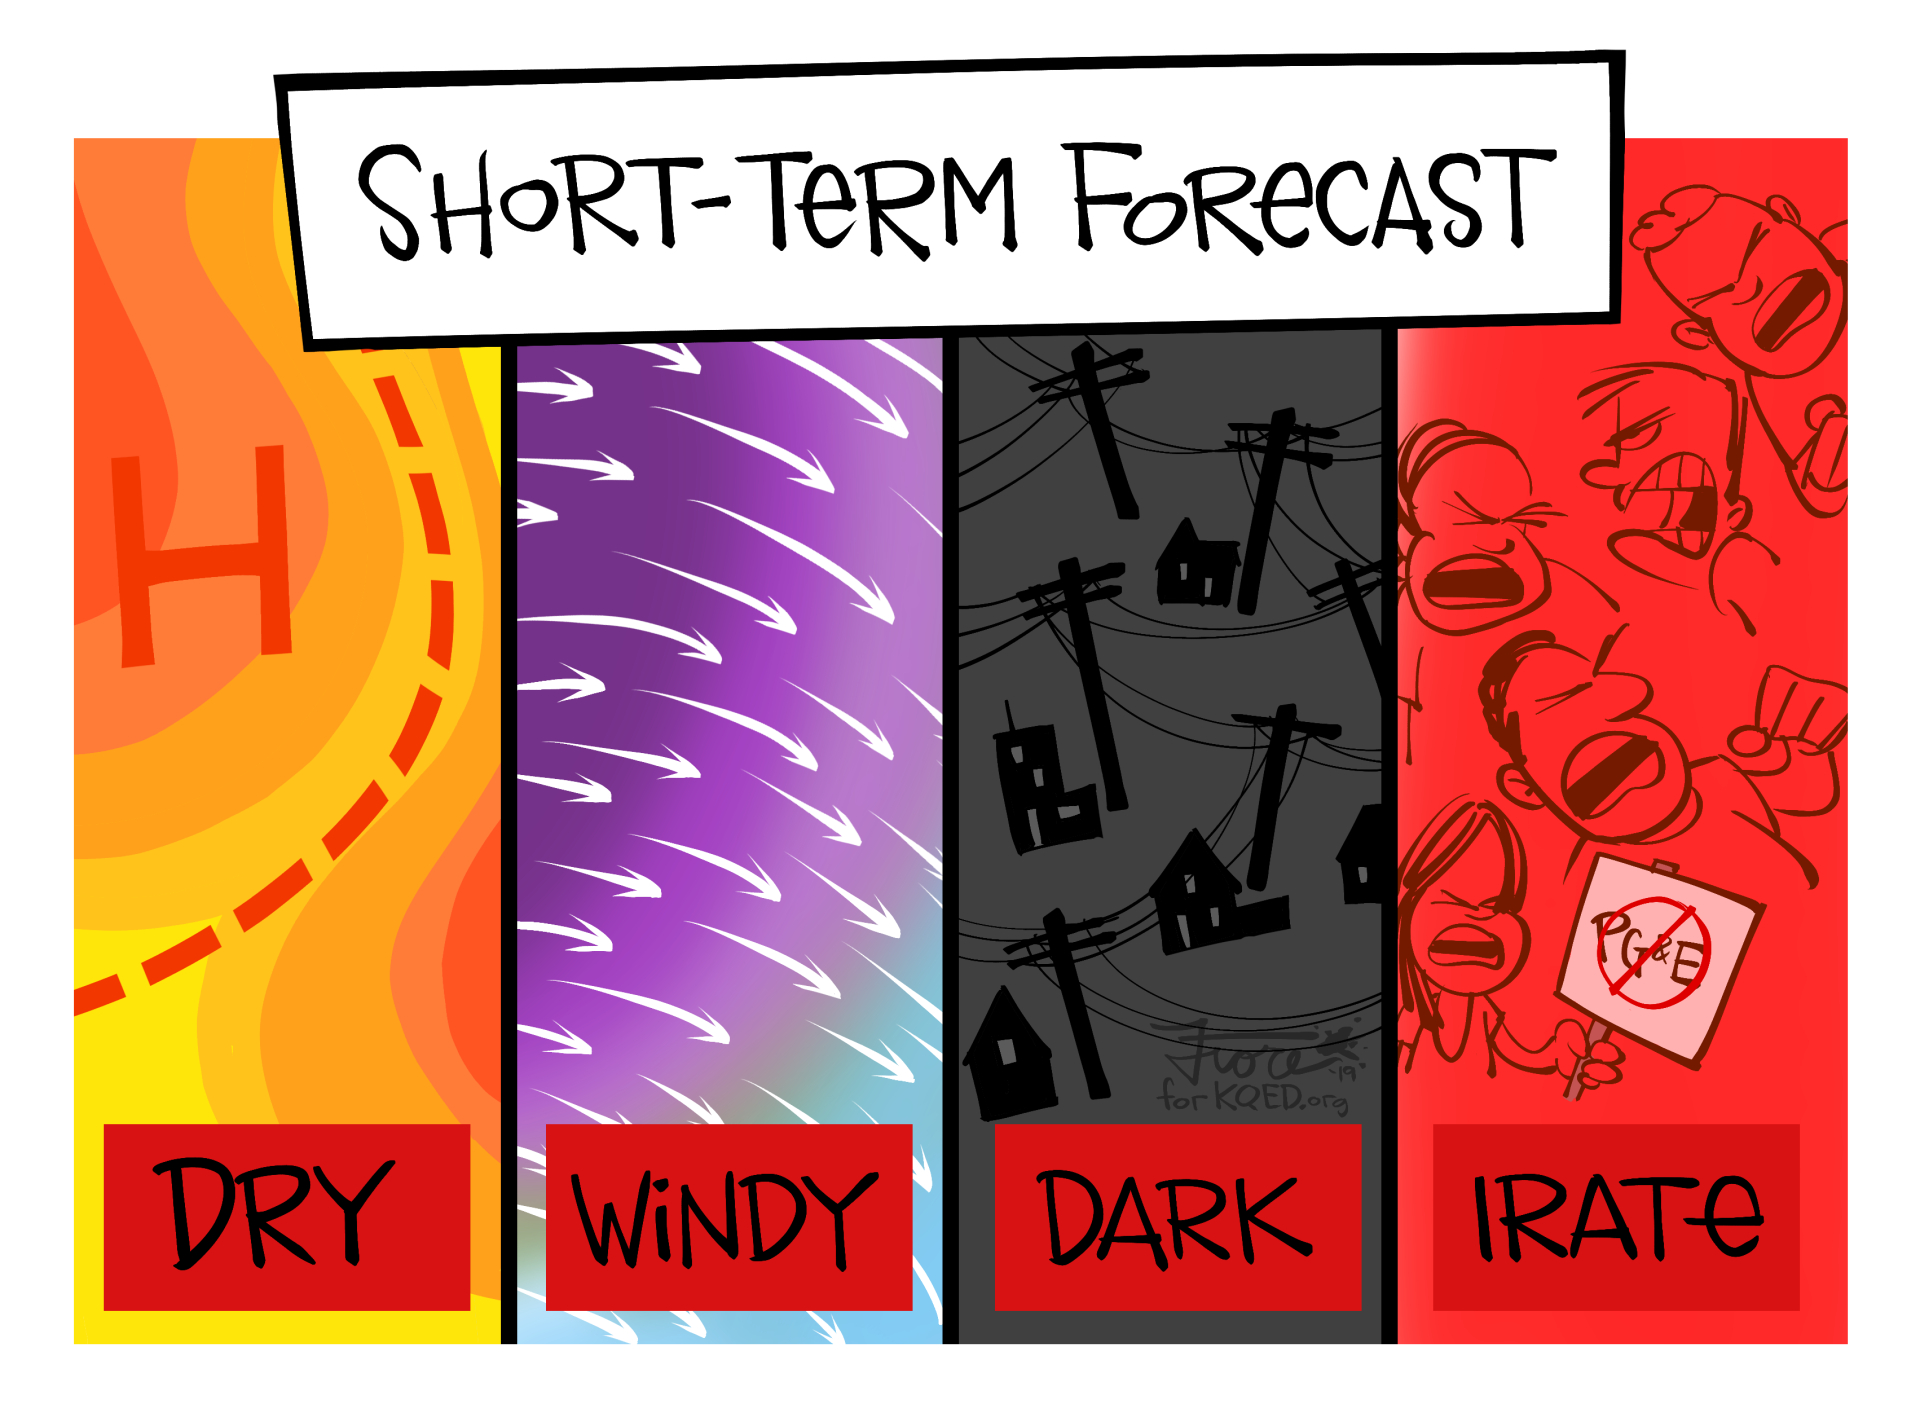 High Winds and Dark Times Forecast